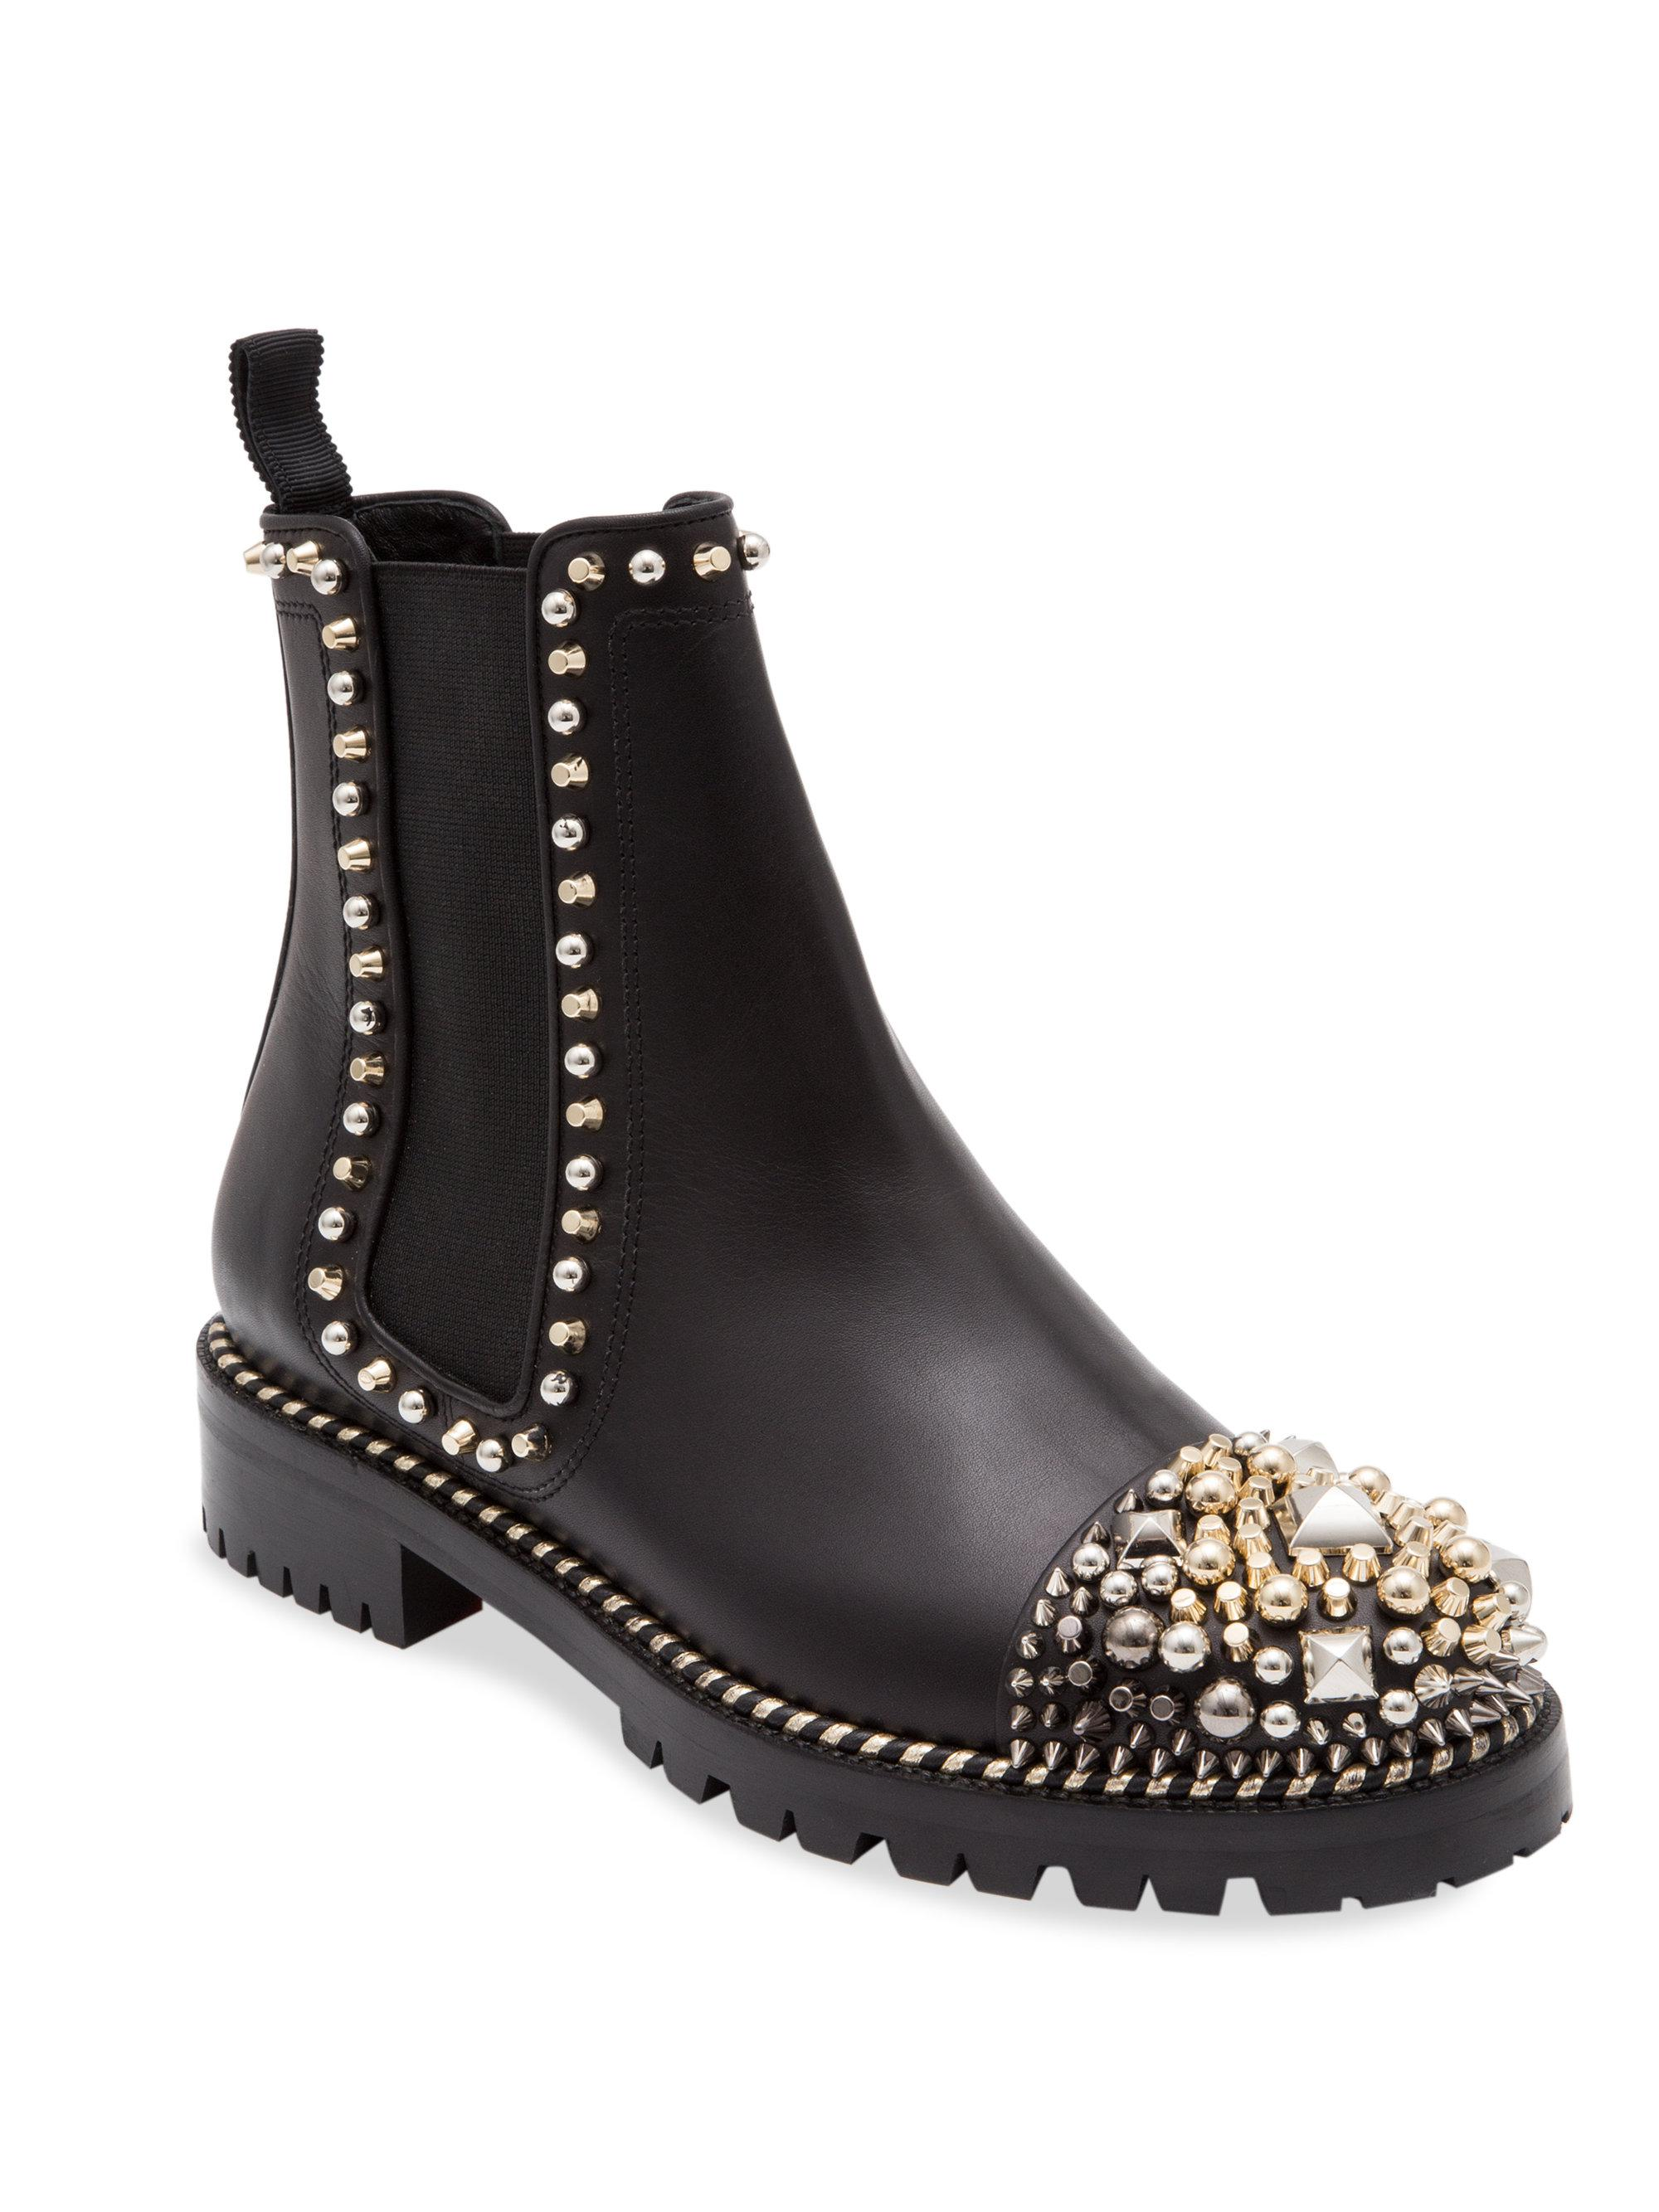 low priced 5db1c 479d2 Christian Louboutin Women's 3170782bk01o Black Leather Ankle Boots